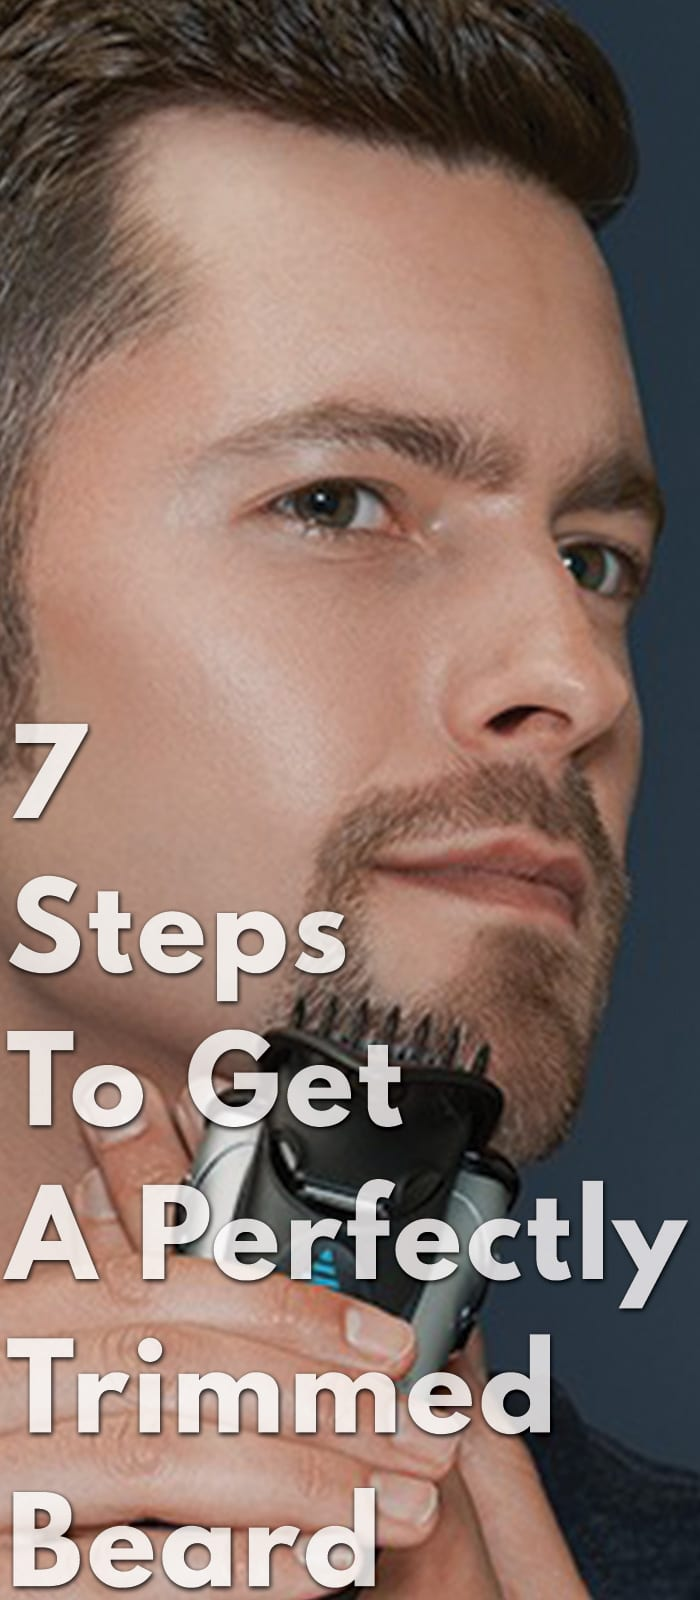 7-Steps-To-Get-A-Perfectly-Trimmed-Beard.